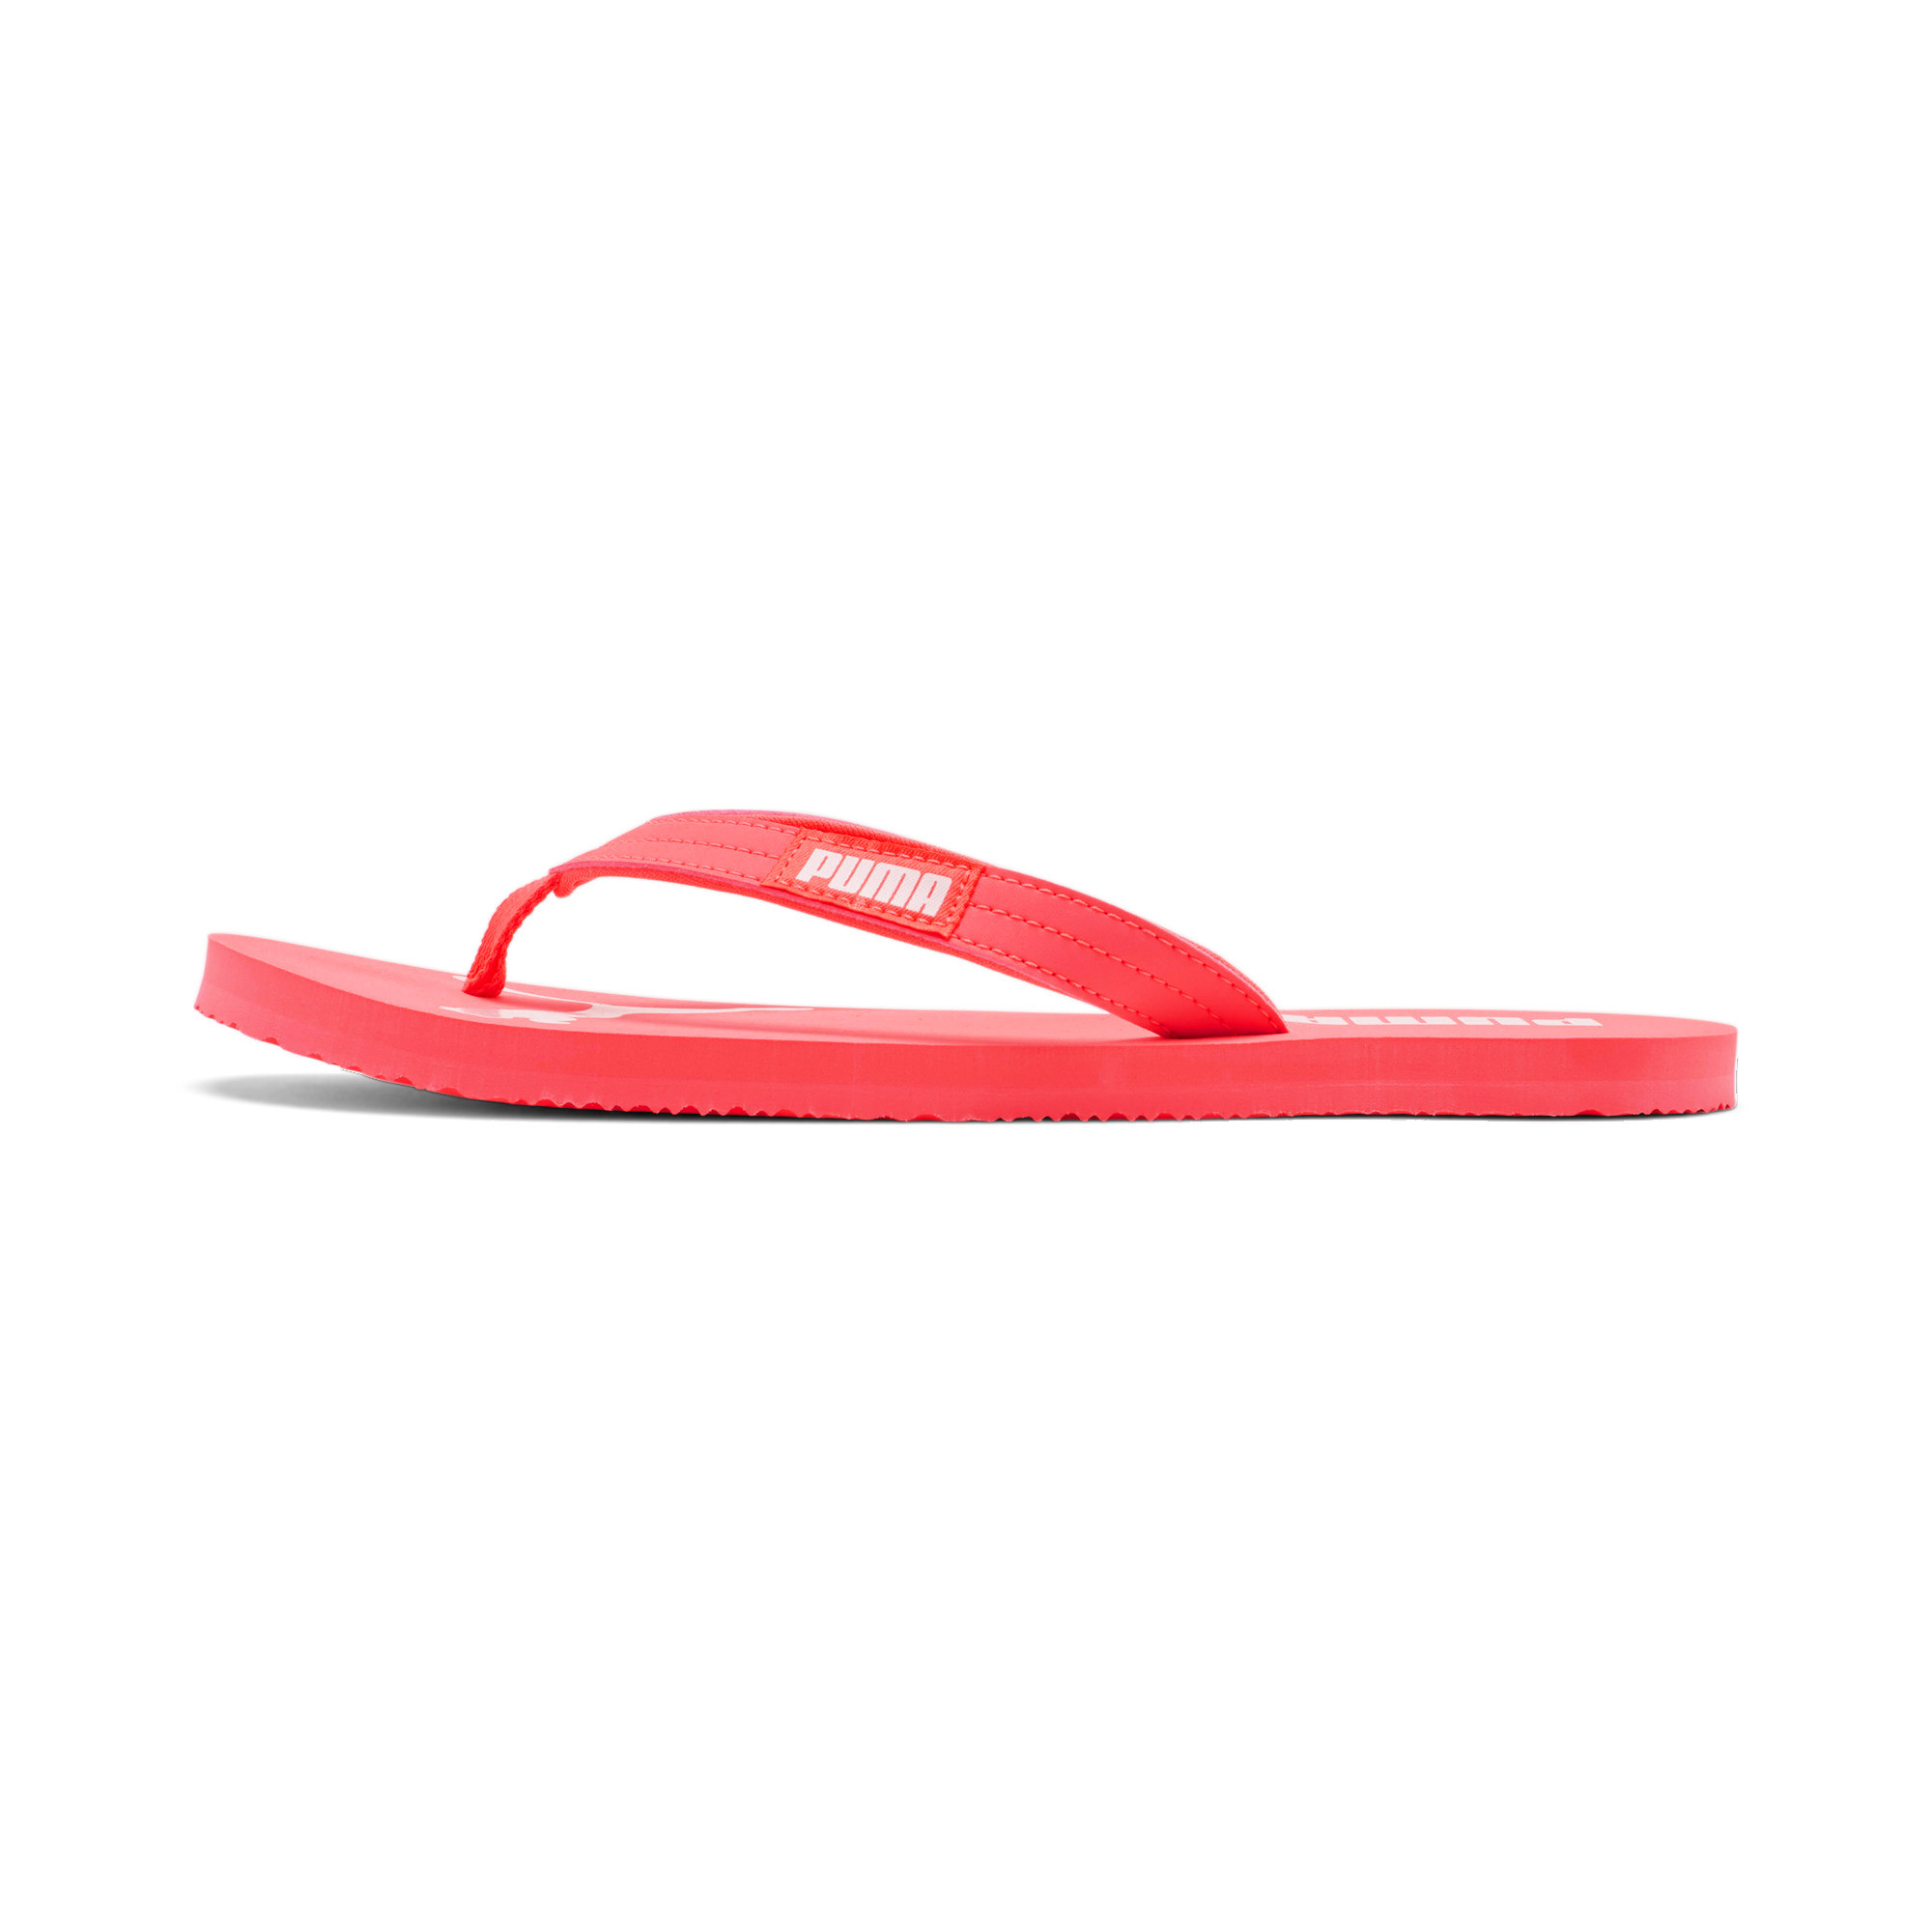 PUMA-Women-039-s-Cozy-Flip-Sandals thumbnail 16